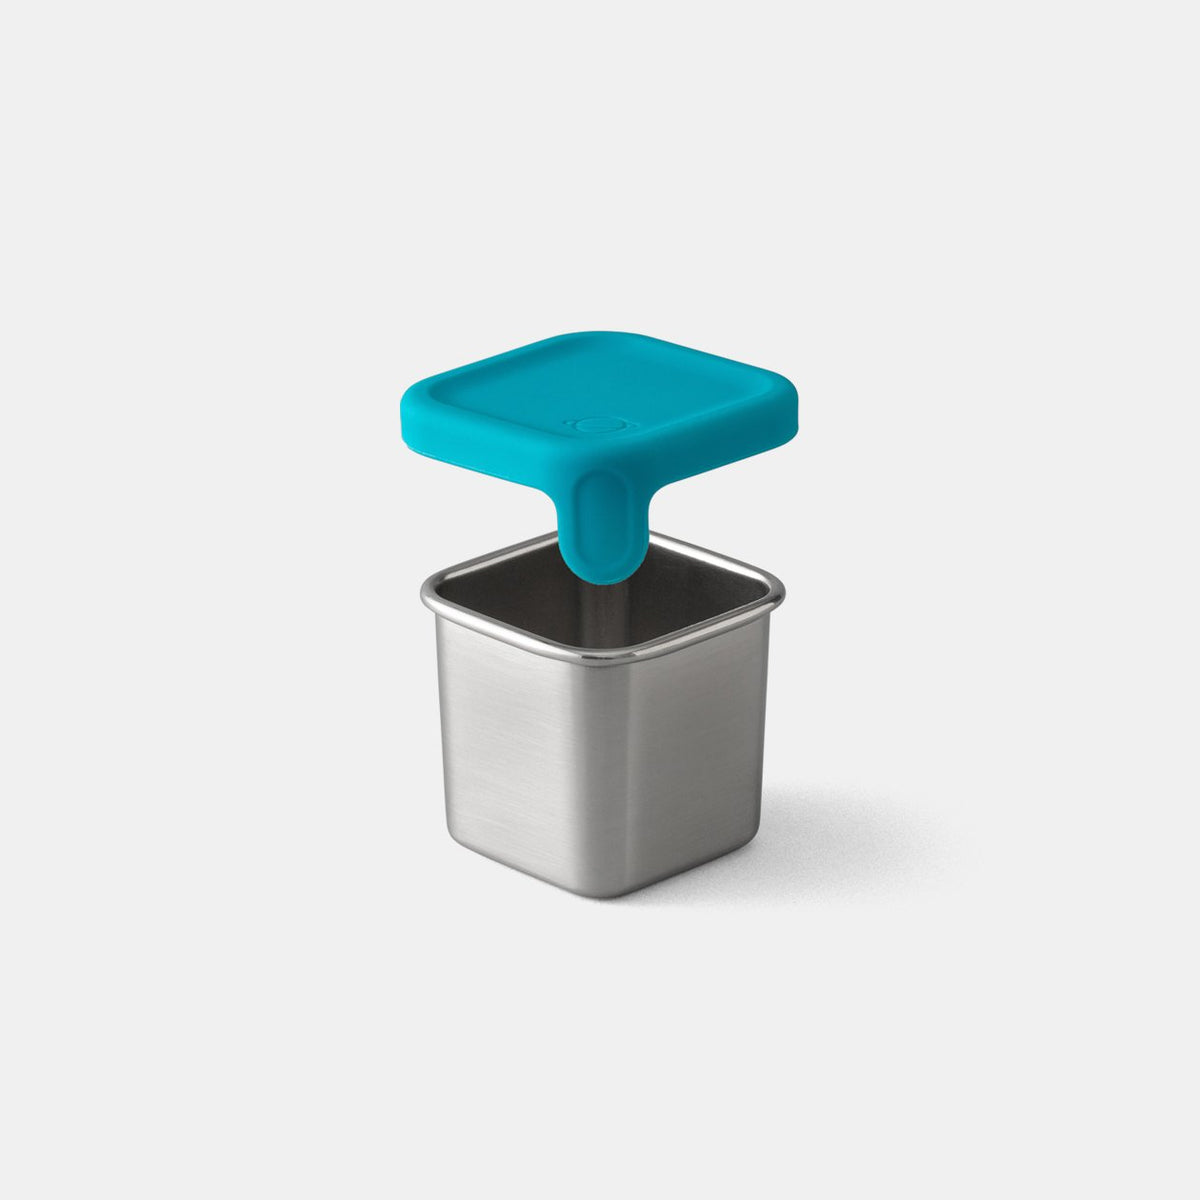 Little Square Dipper - for Launch & Shuttle